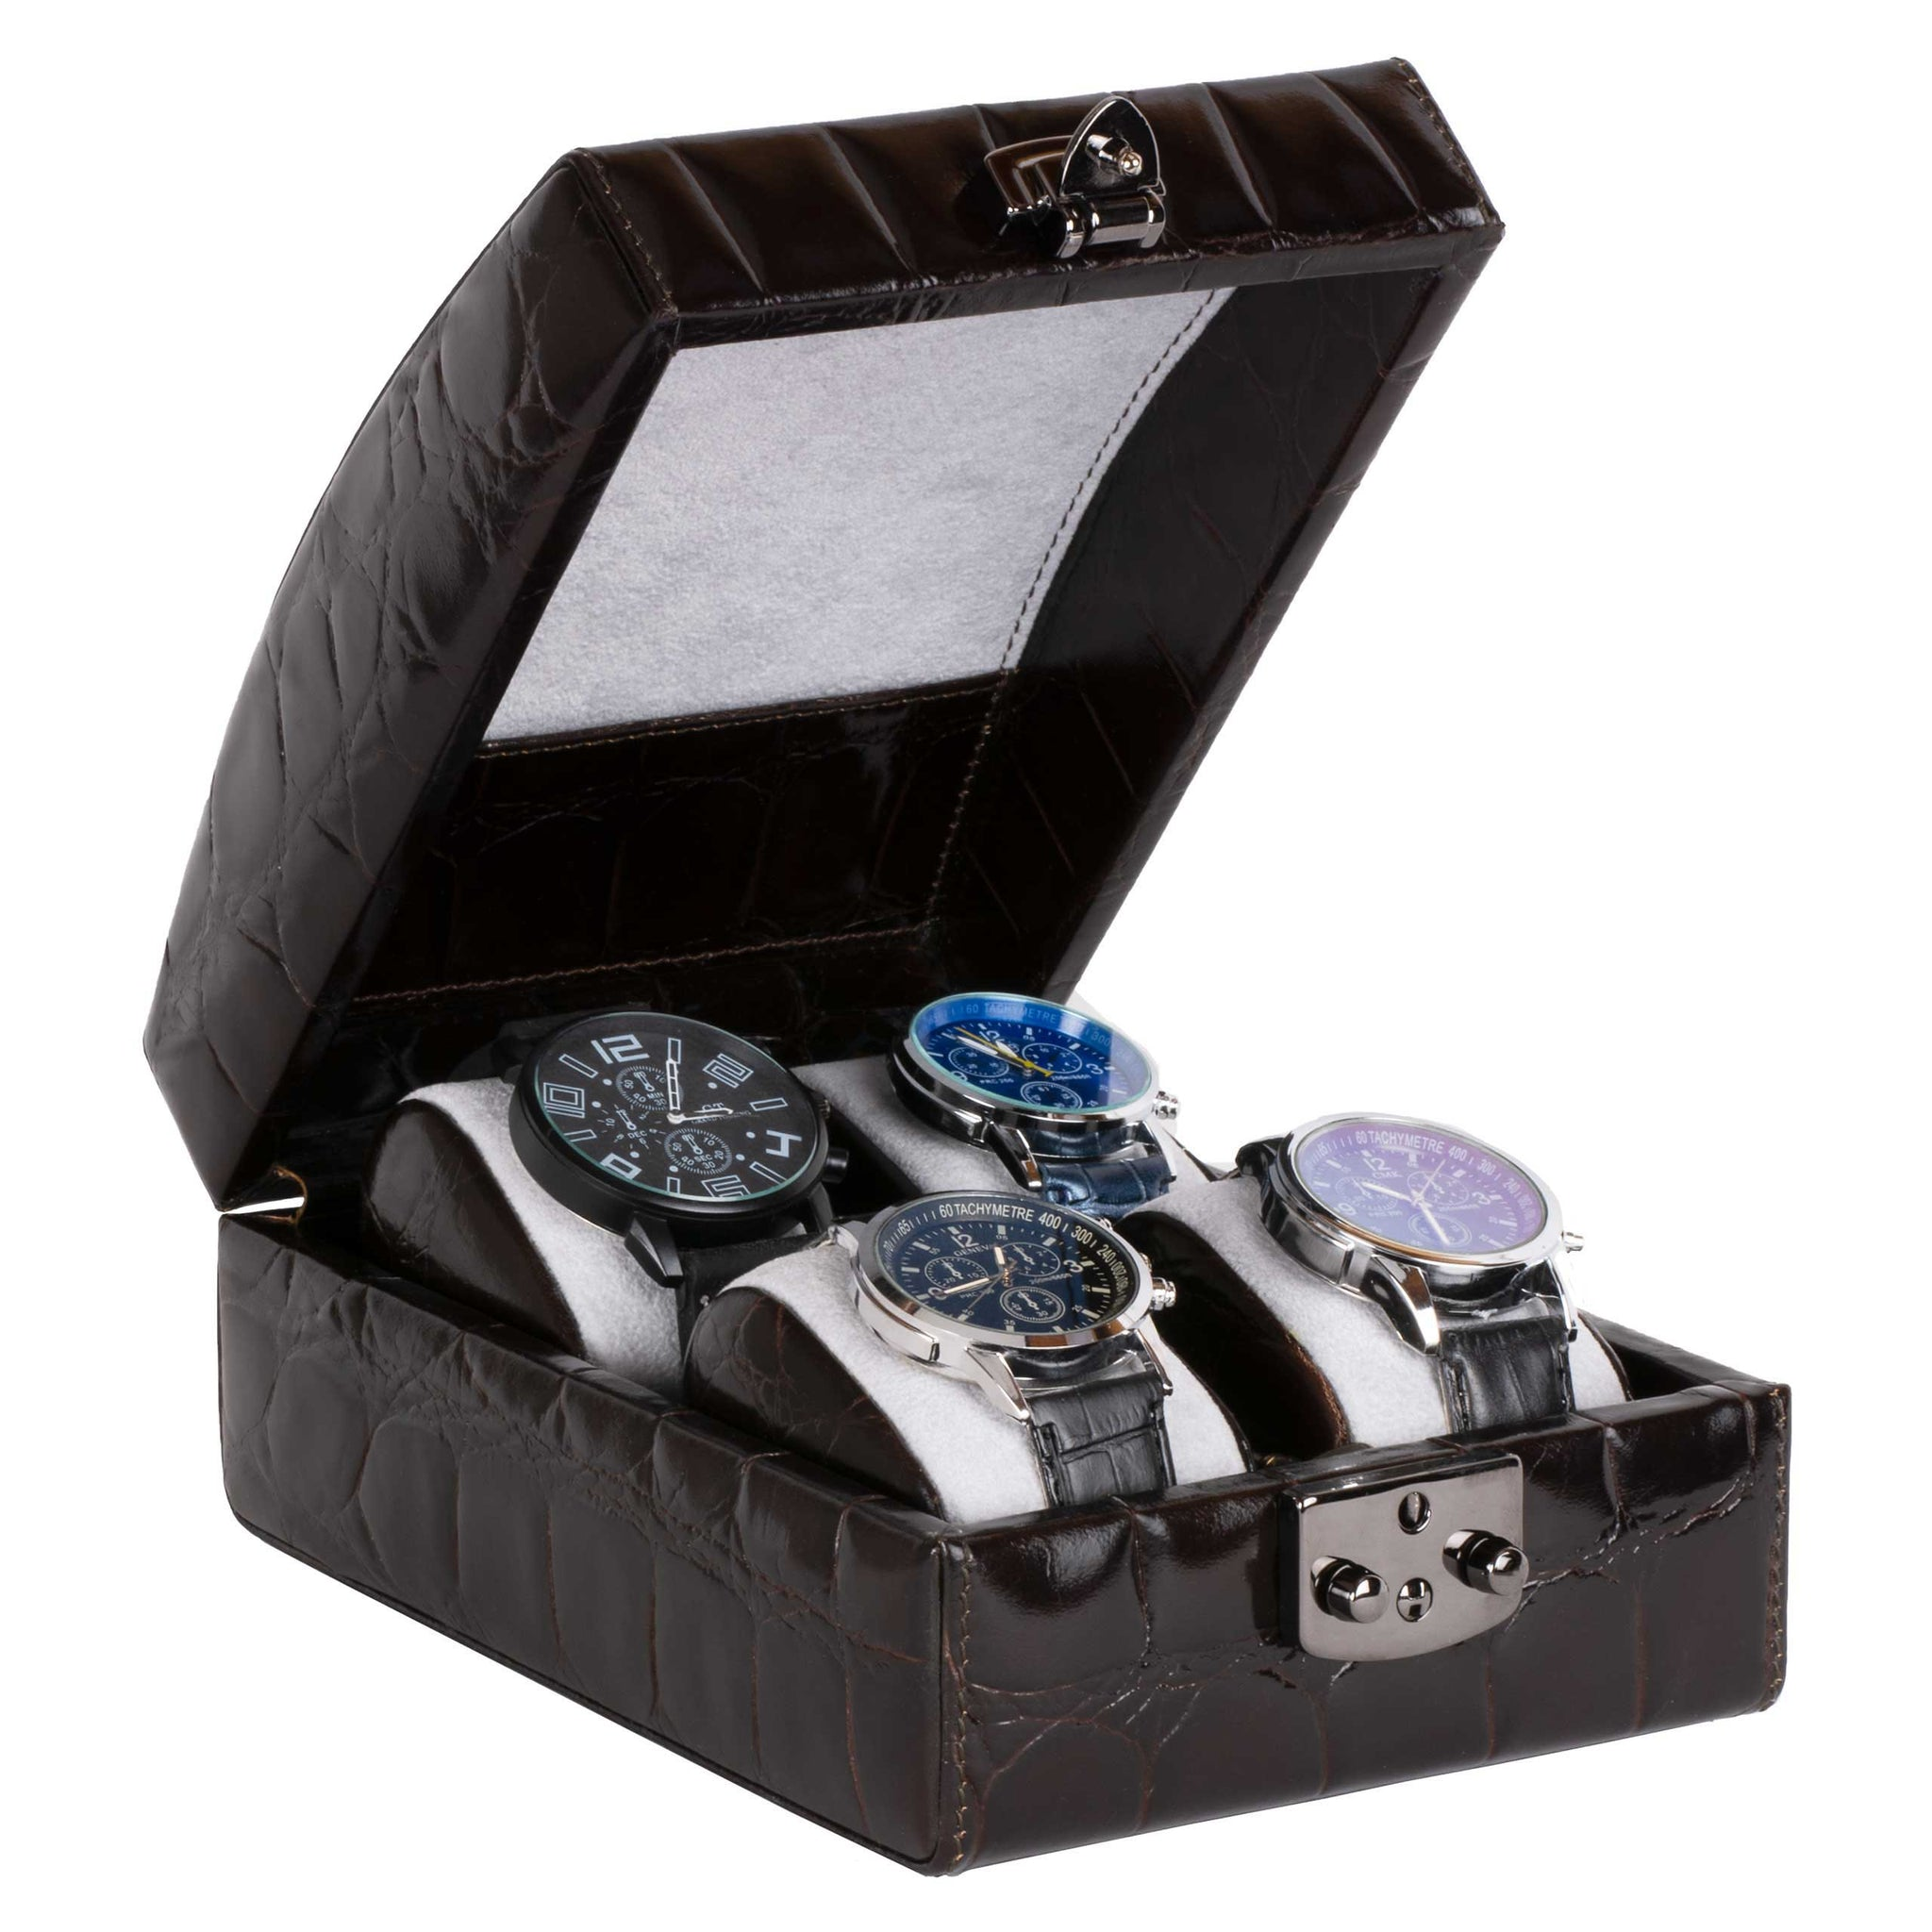 DiLoro Italian Leather Four Watch Case Box in Dark Brown Croc Print  - Open (watches not included)